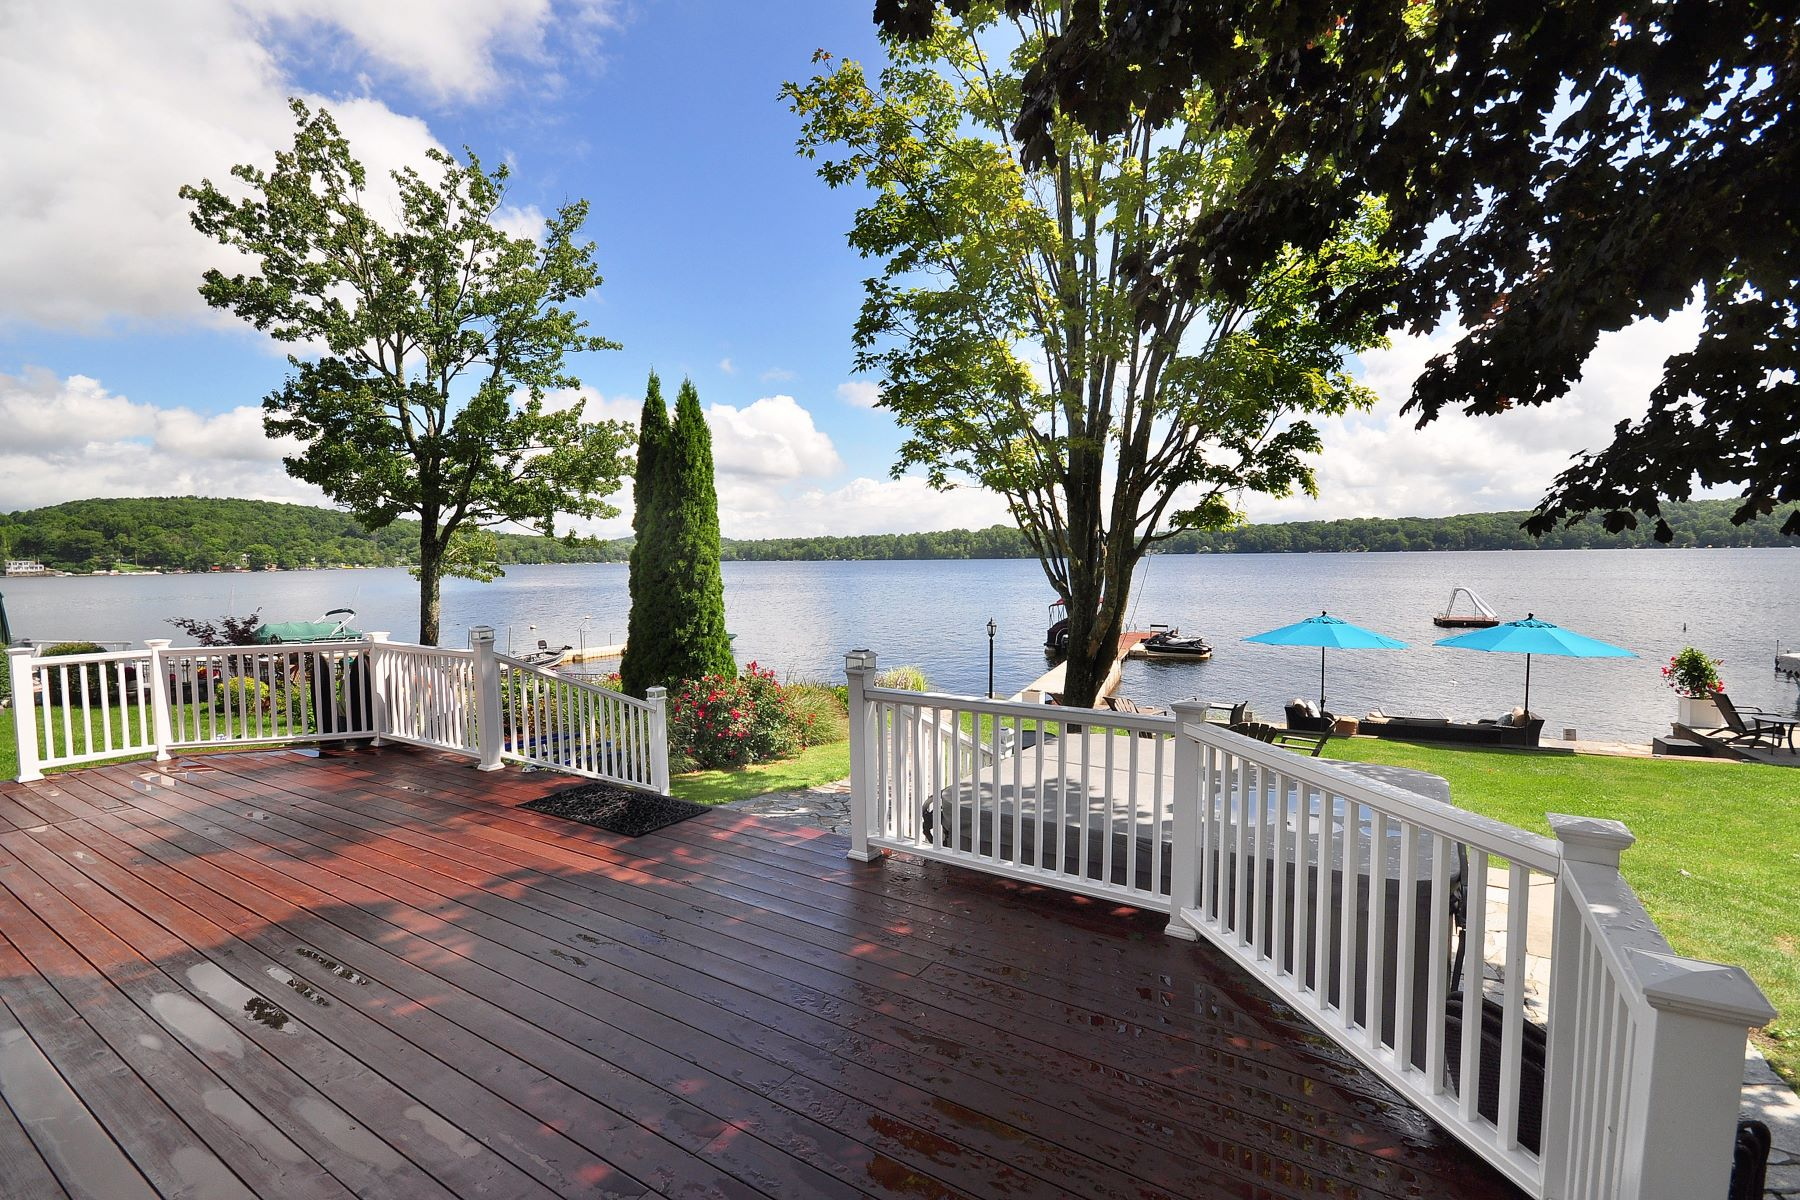 Single Family Homes for Sale at Bantam Lake Direct Waterfront 28 Brunetto Grove Morris, Connecticut 06763 United States